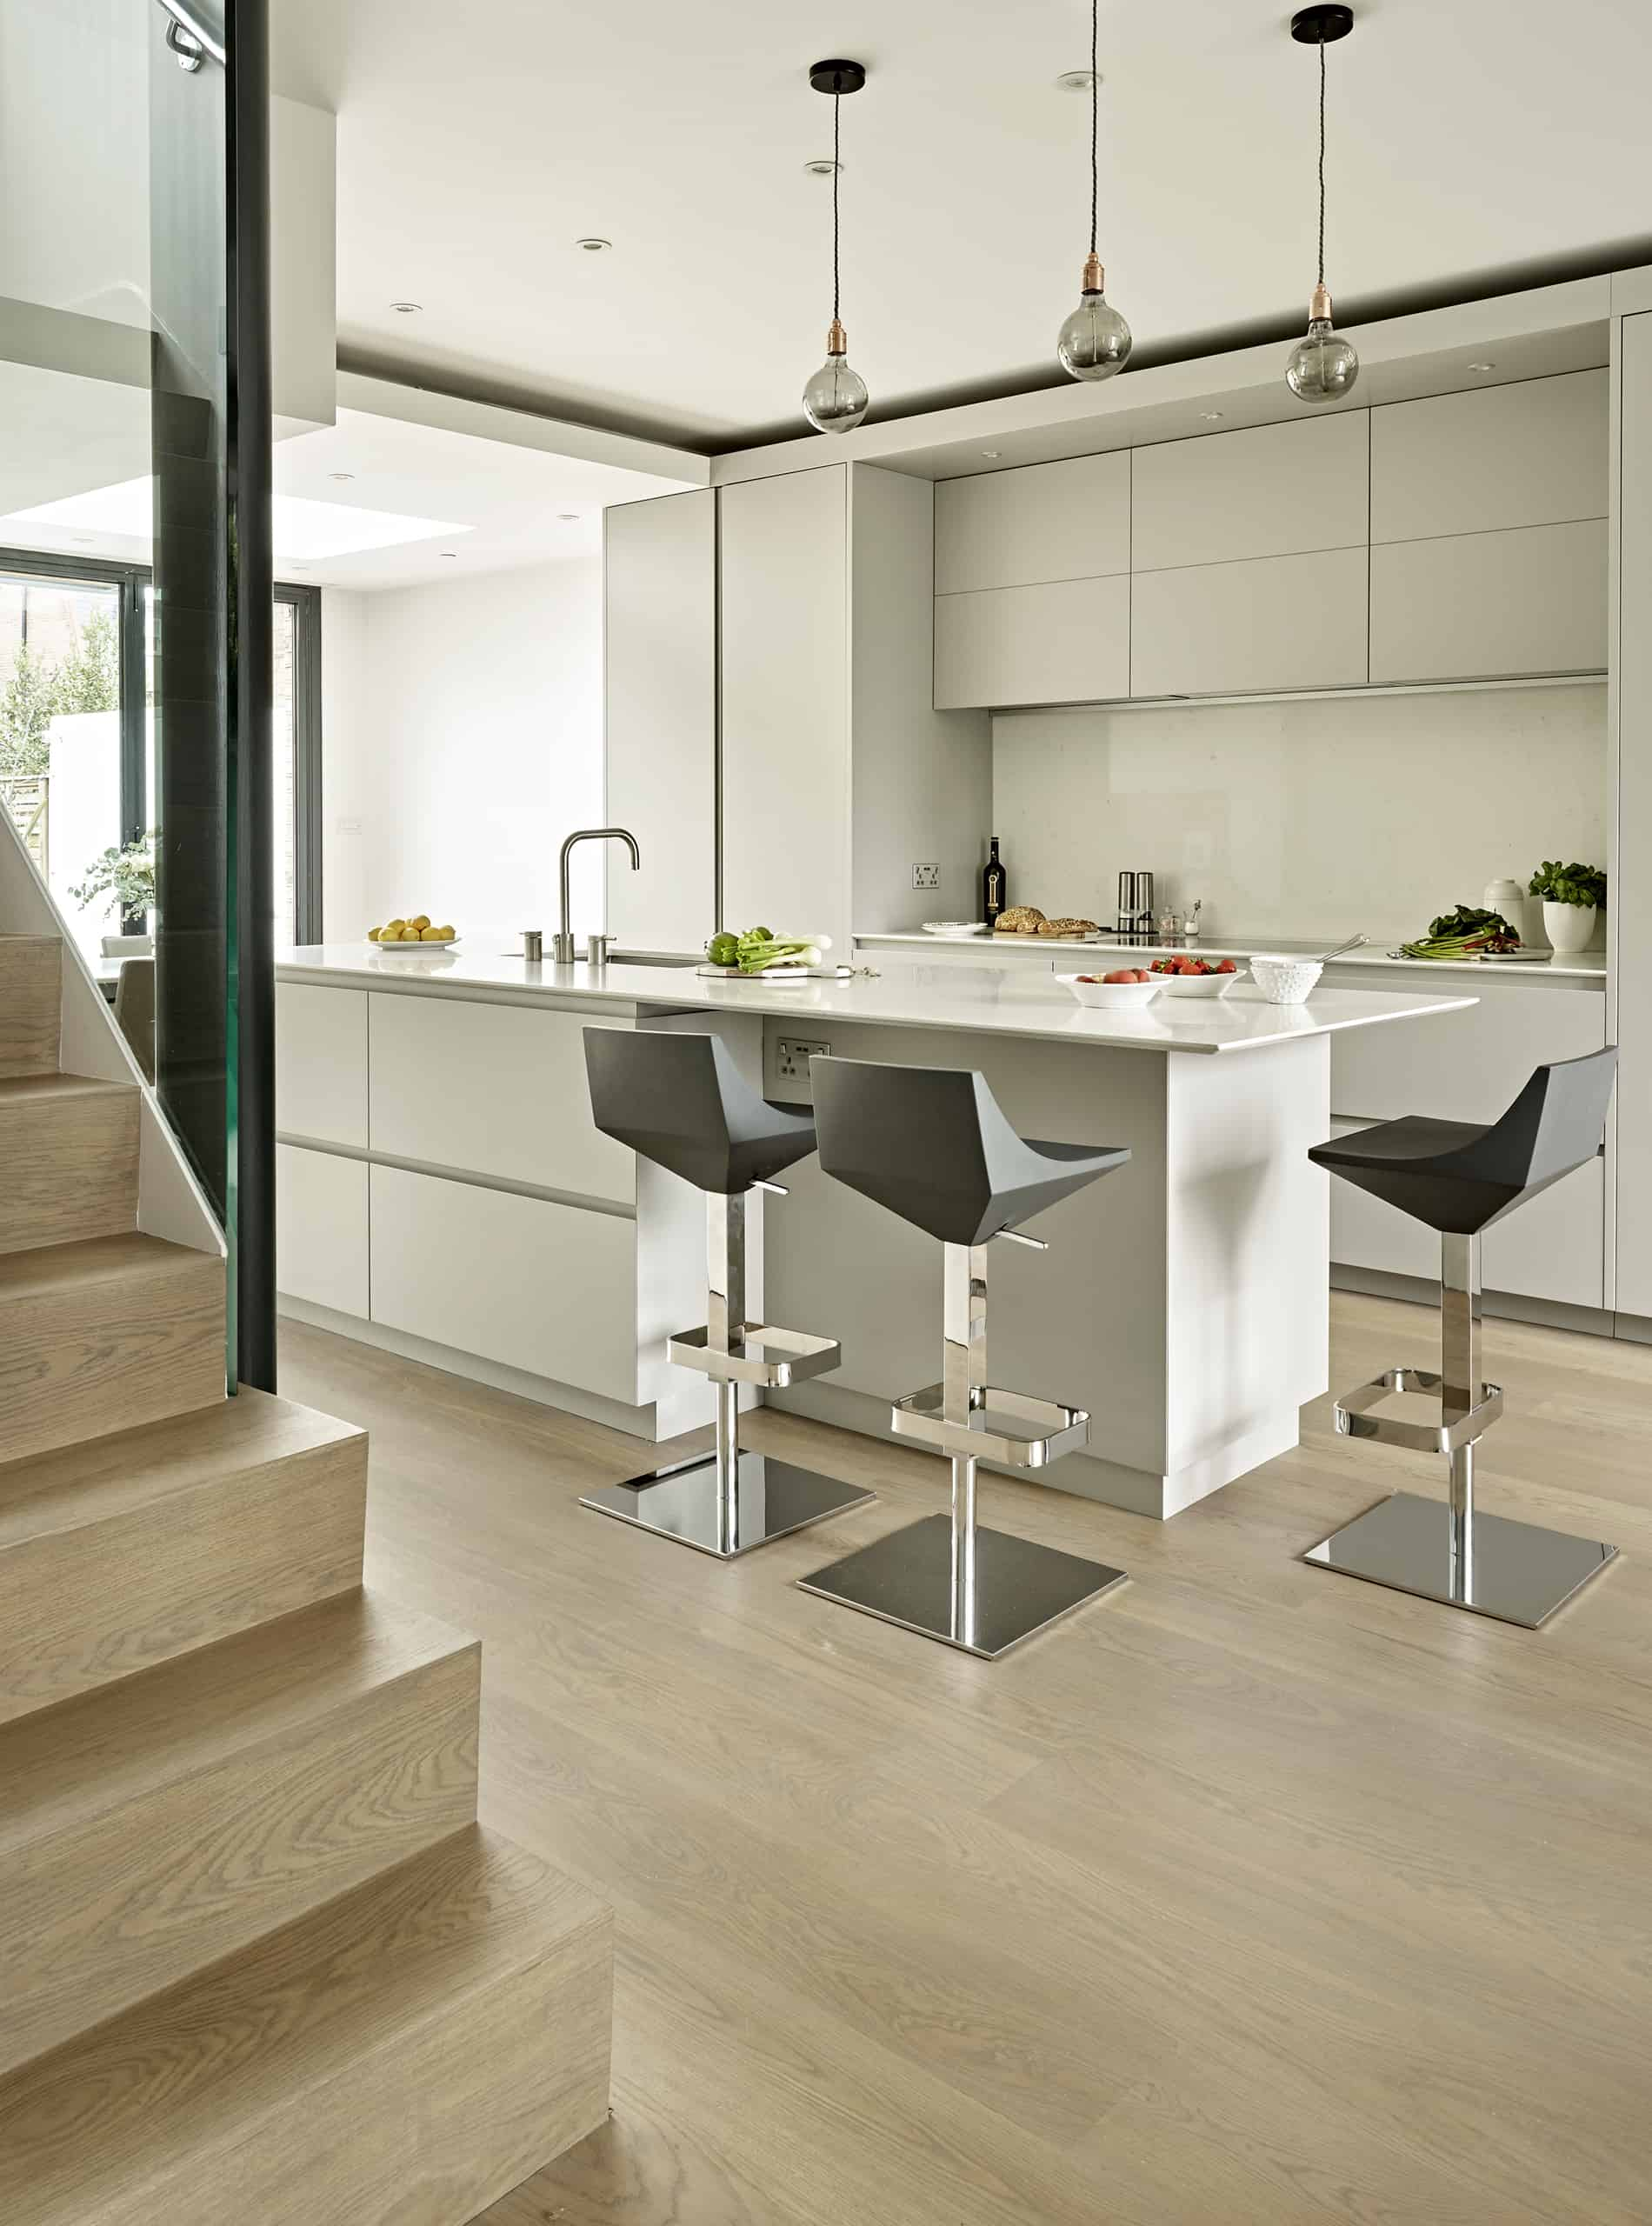 Wimbledon light grey contemporary kitchen design with central island and breakfast bar